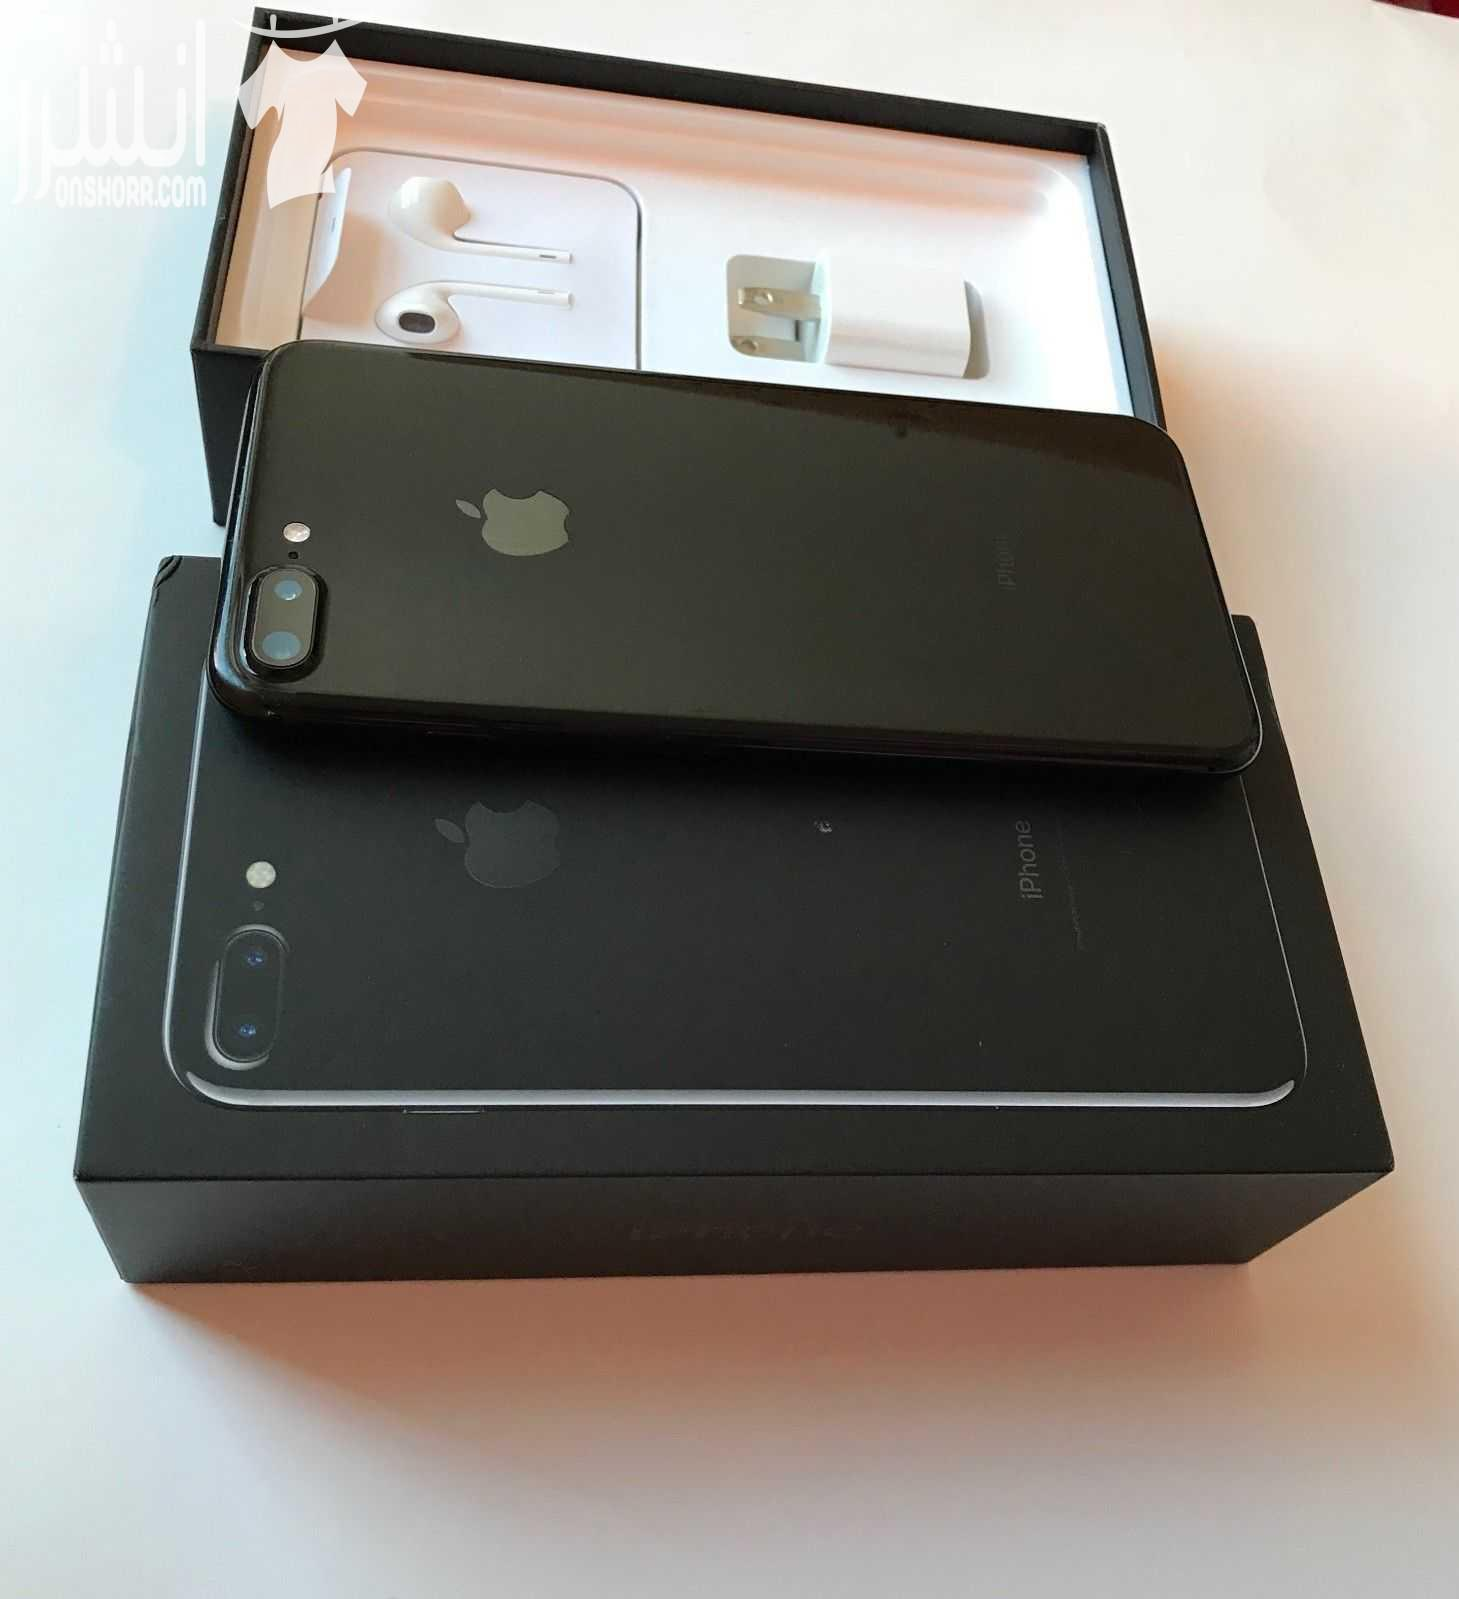 https://play.google.com/store/apps/details?id=com.w_8539586-  Apple iPhone x iPhone 8...